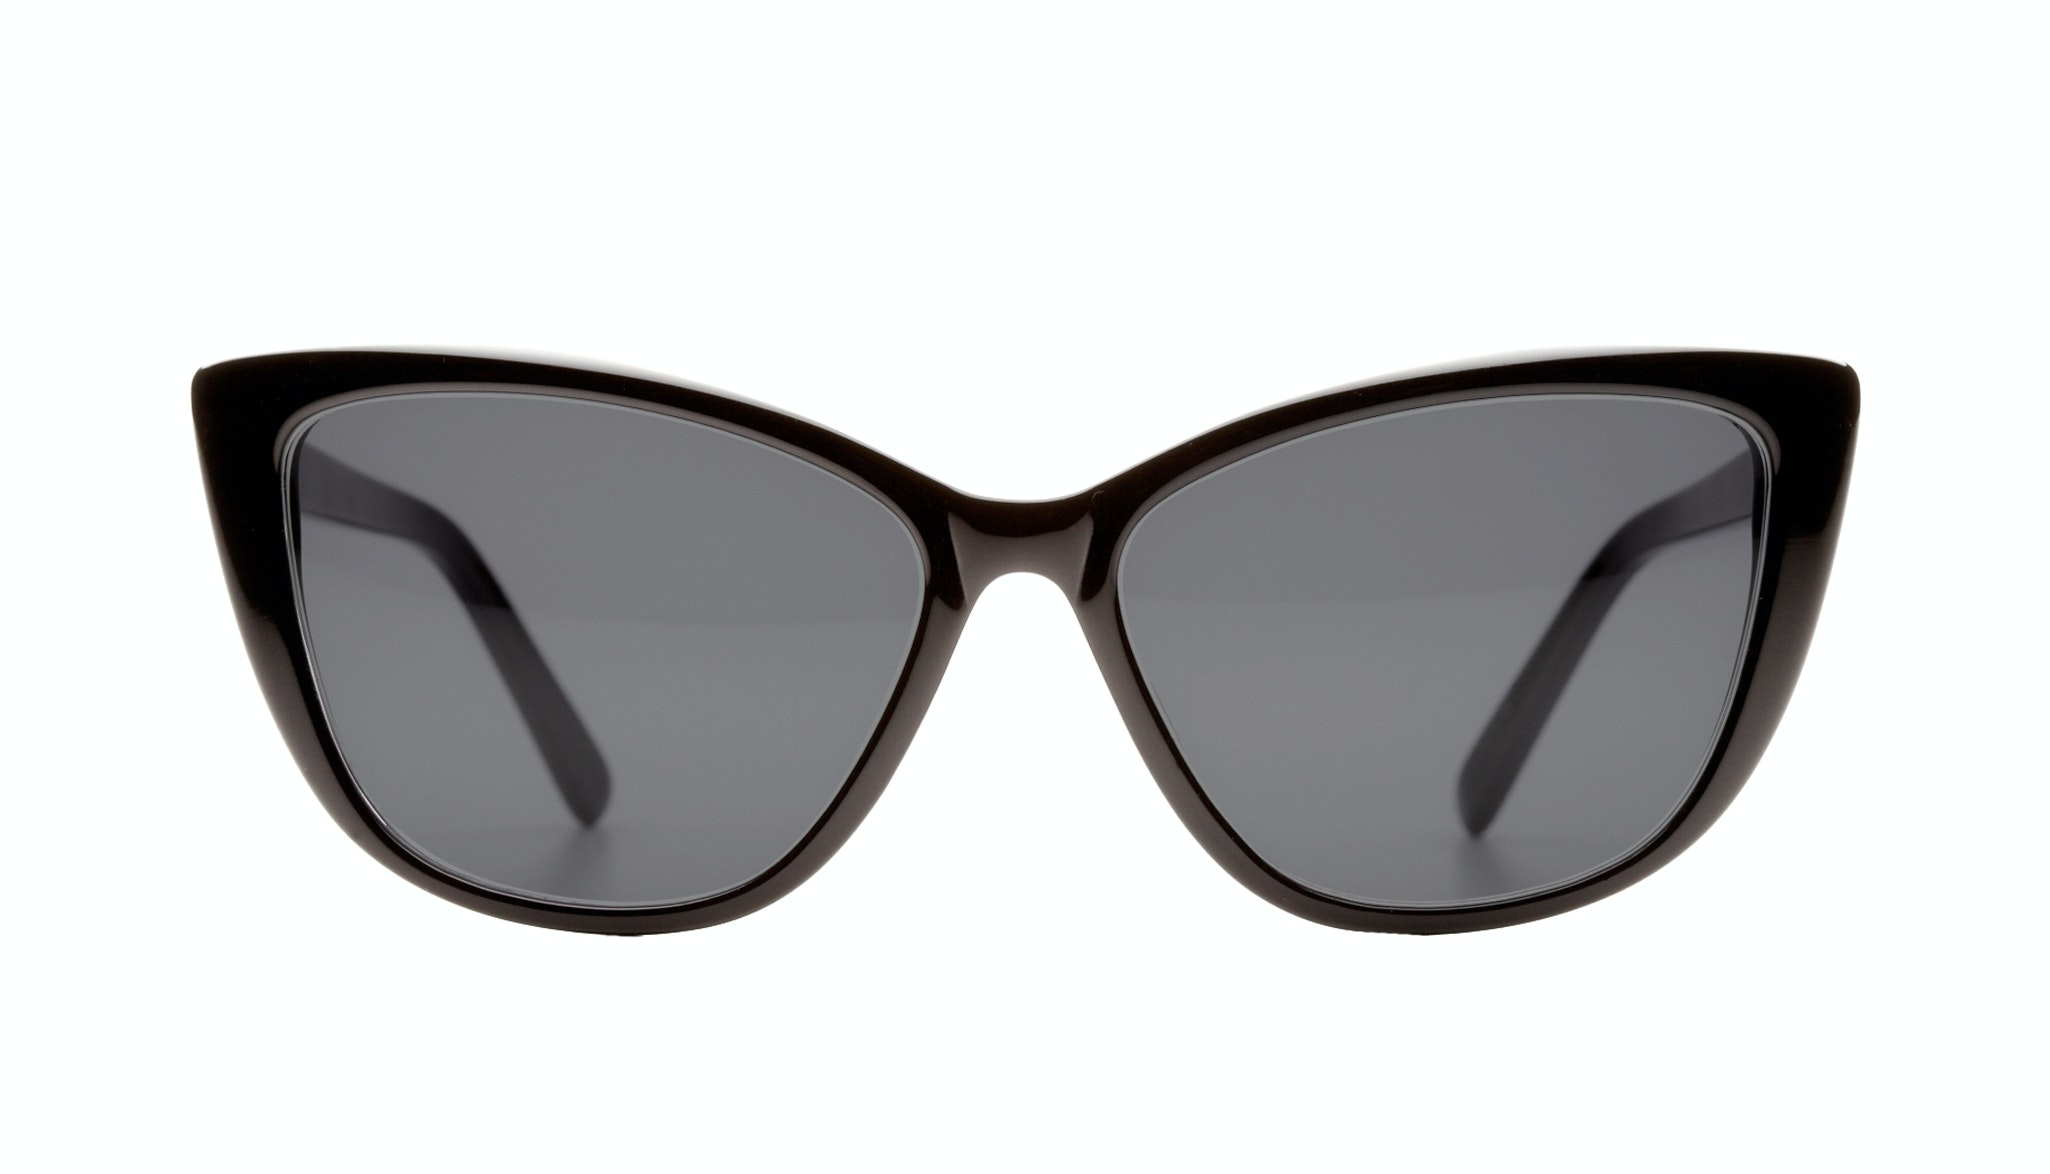 Affordable Fashion Glasses Cat Eye Daring Cateye Sunglasses Women Dolled Up Black Front